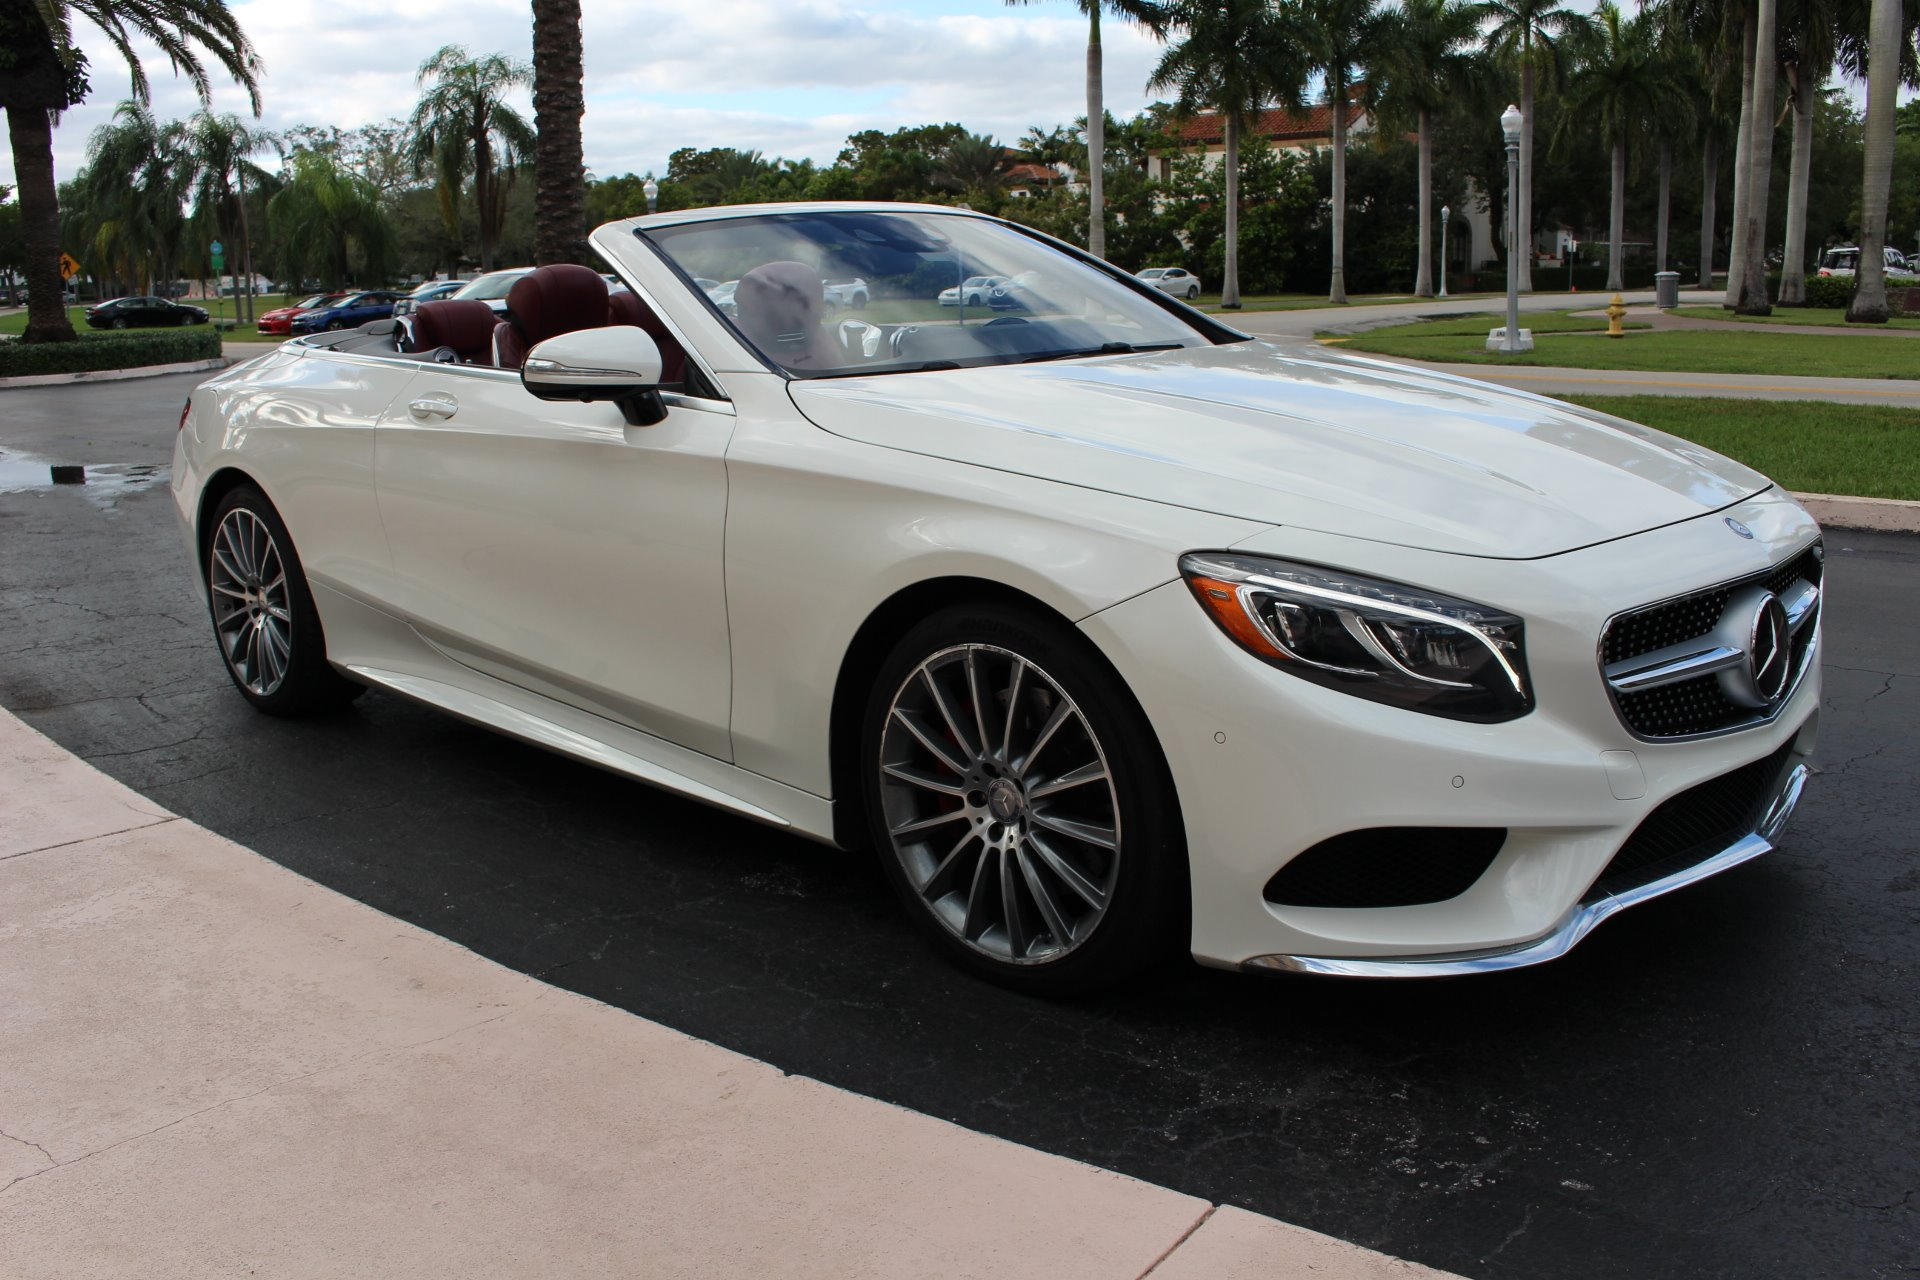 Used 2017 Mercedes-Benz S-Class S 550 for sale Sold at The Gables Sports Cars in Miami FL 33146 4